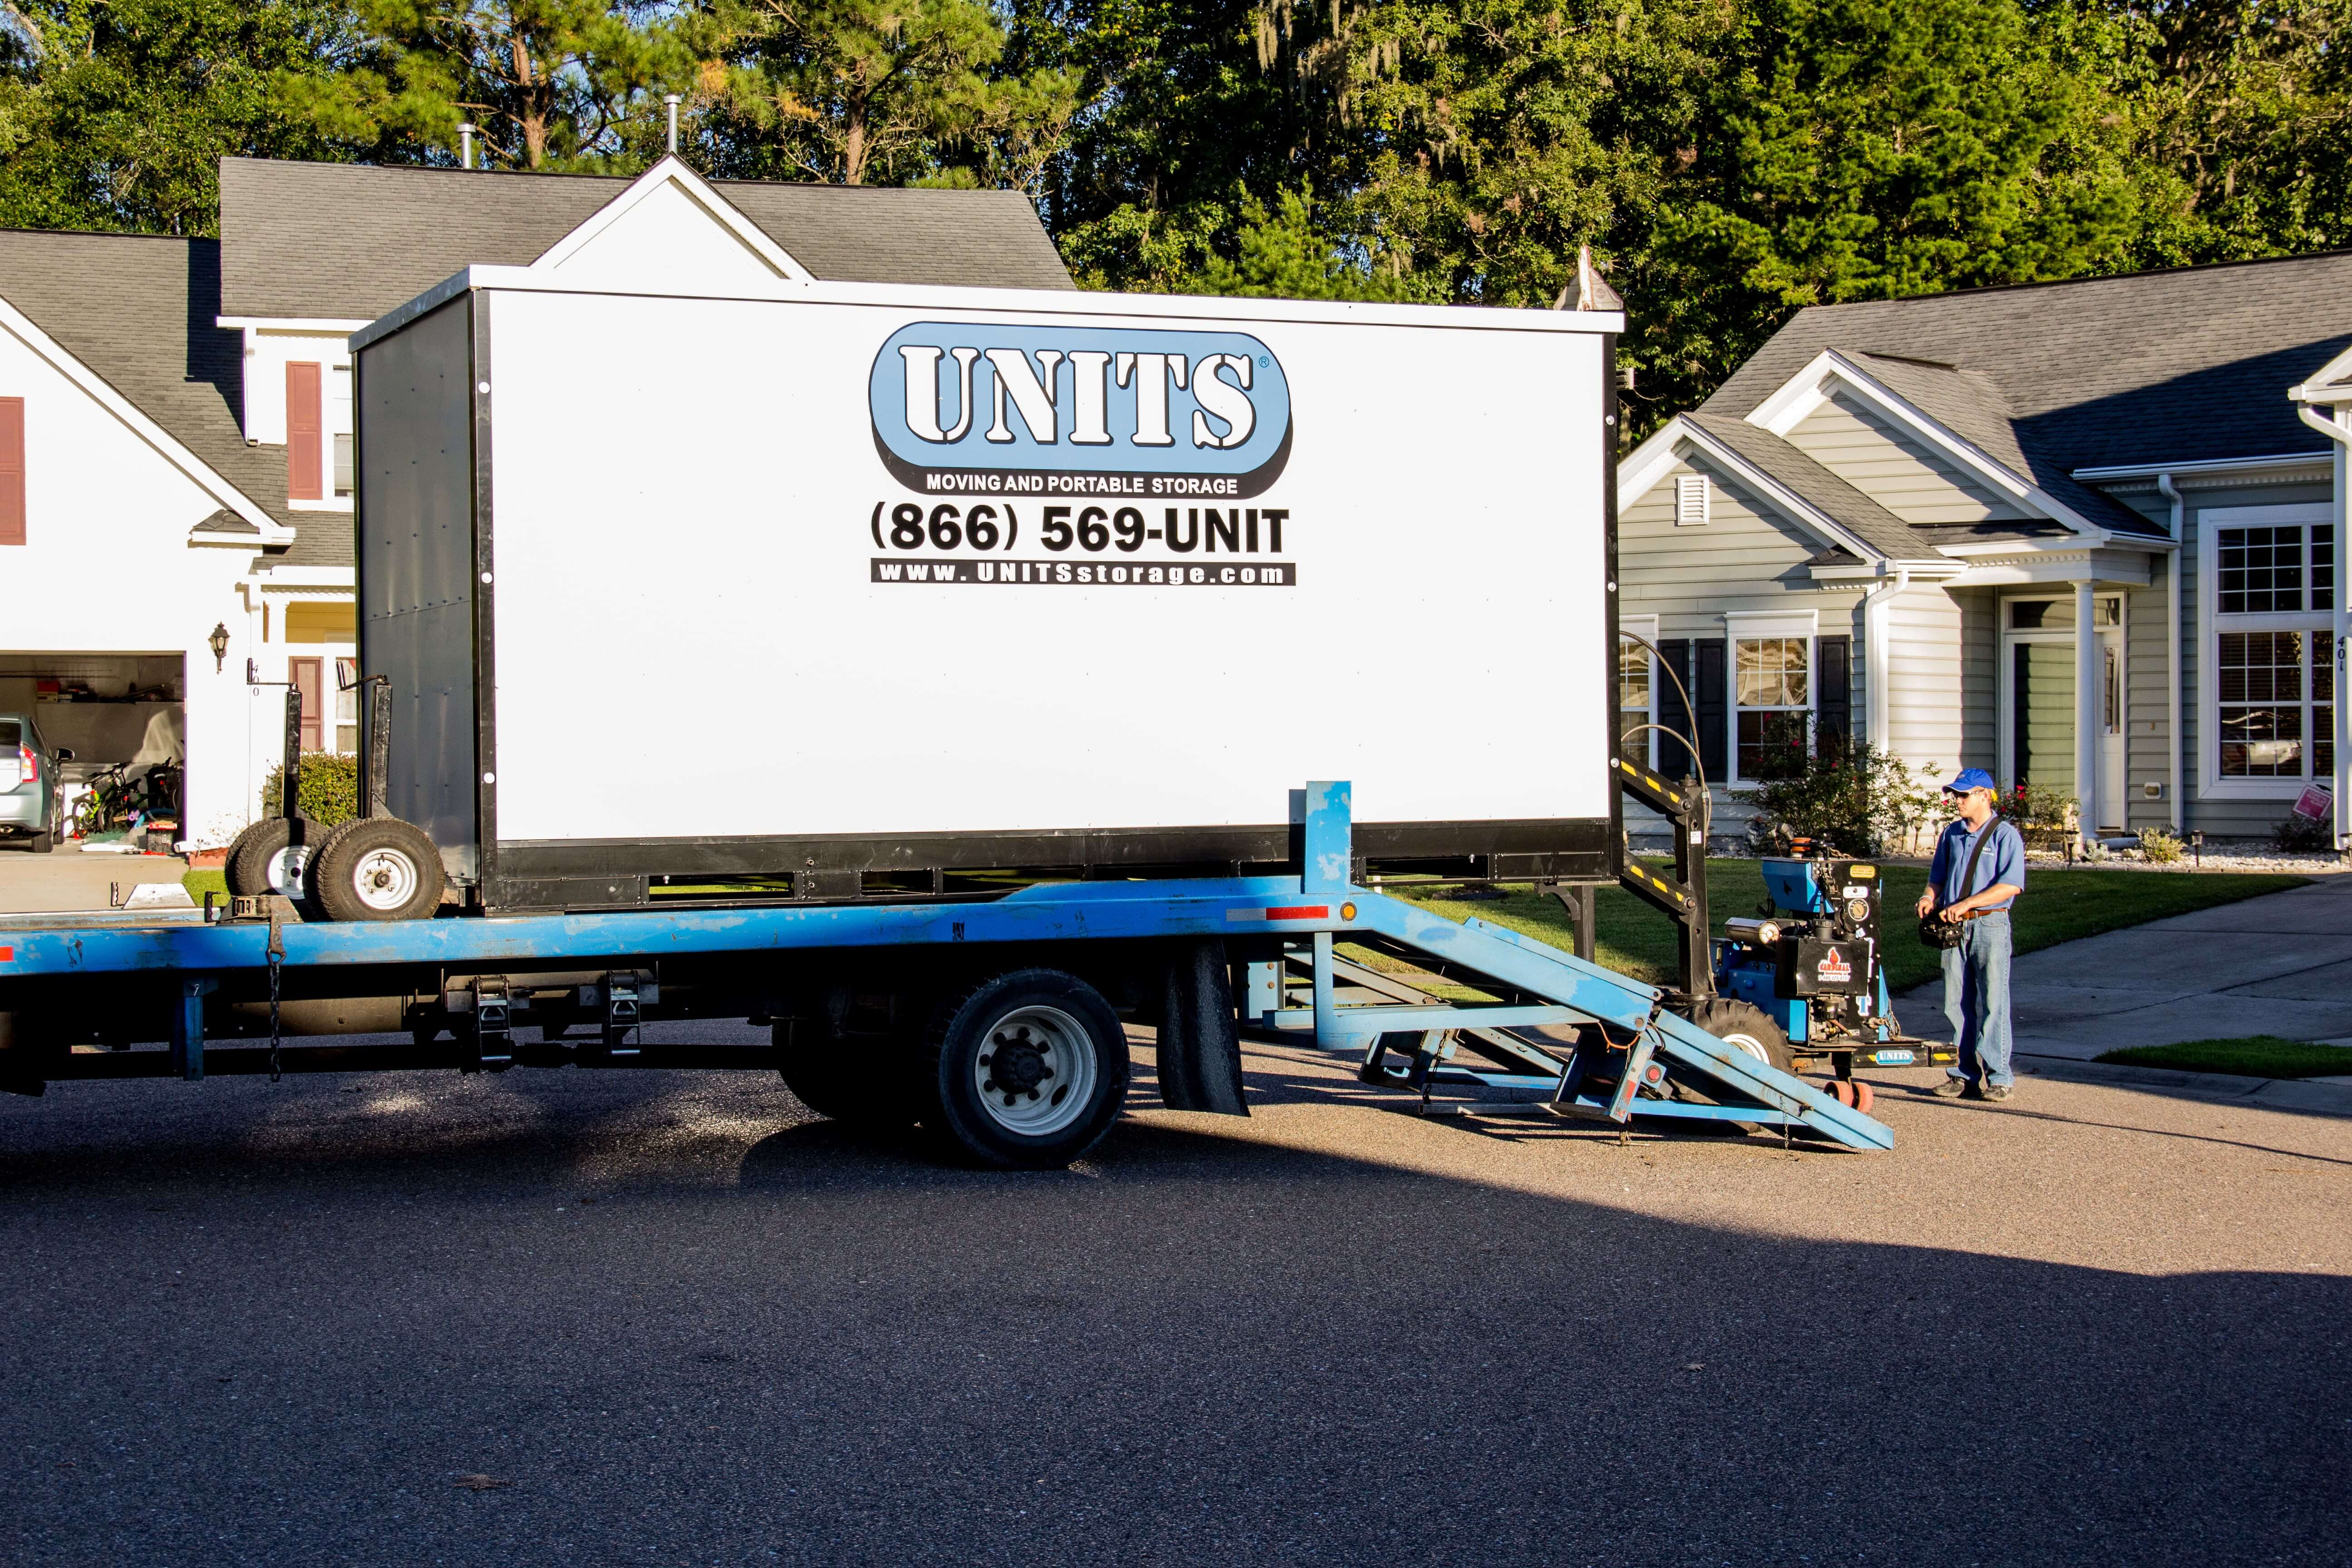 Portable Storage Units Moving And Portable Storage & Moving And Portable Storage - Listitdallas